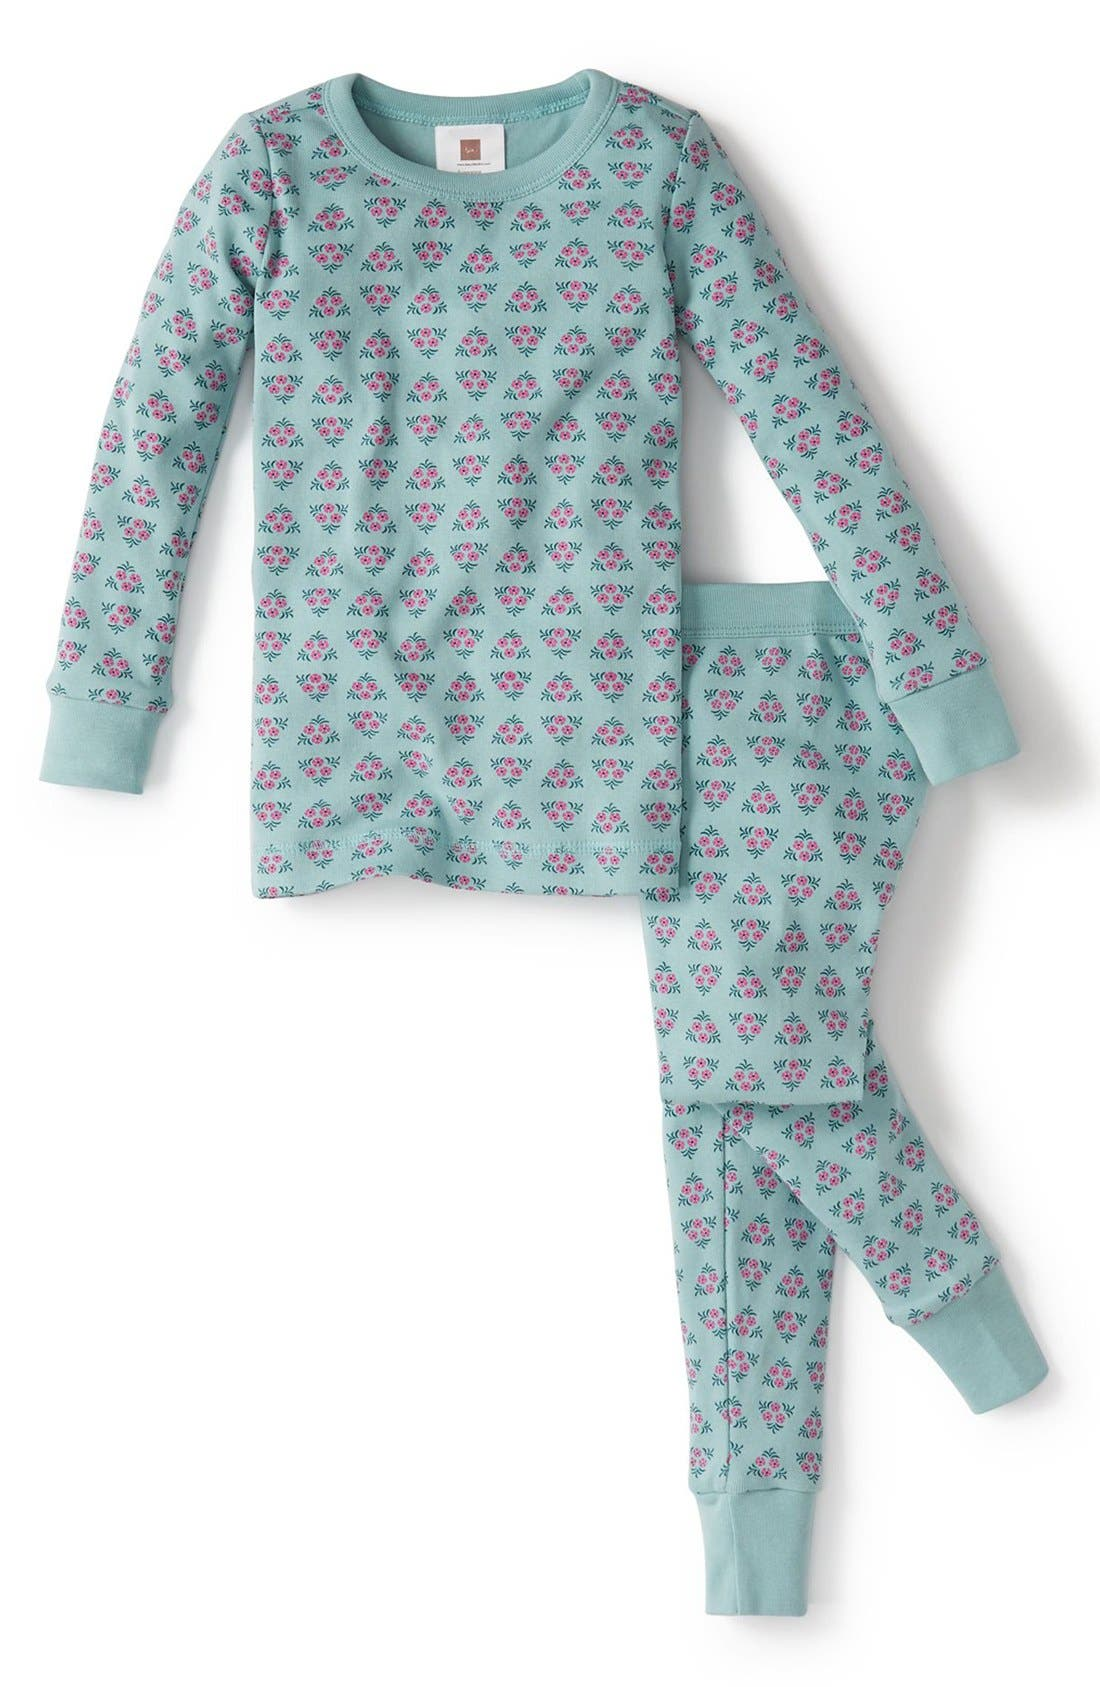 Alternate Image 1 Selected - Tea Collection 'Cancion de Cuna' Fitted Two-Piece Pajamas (Toddler Girls, Little Girls & Big Girls)